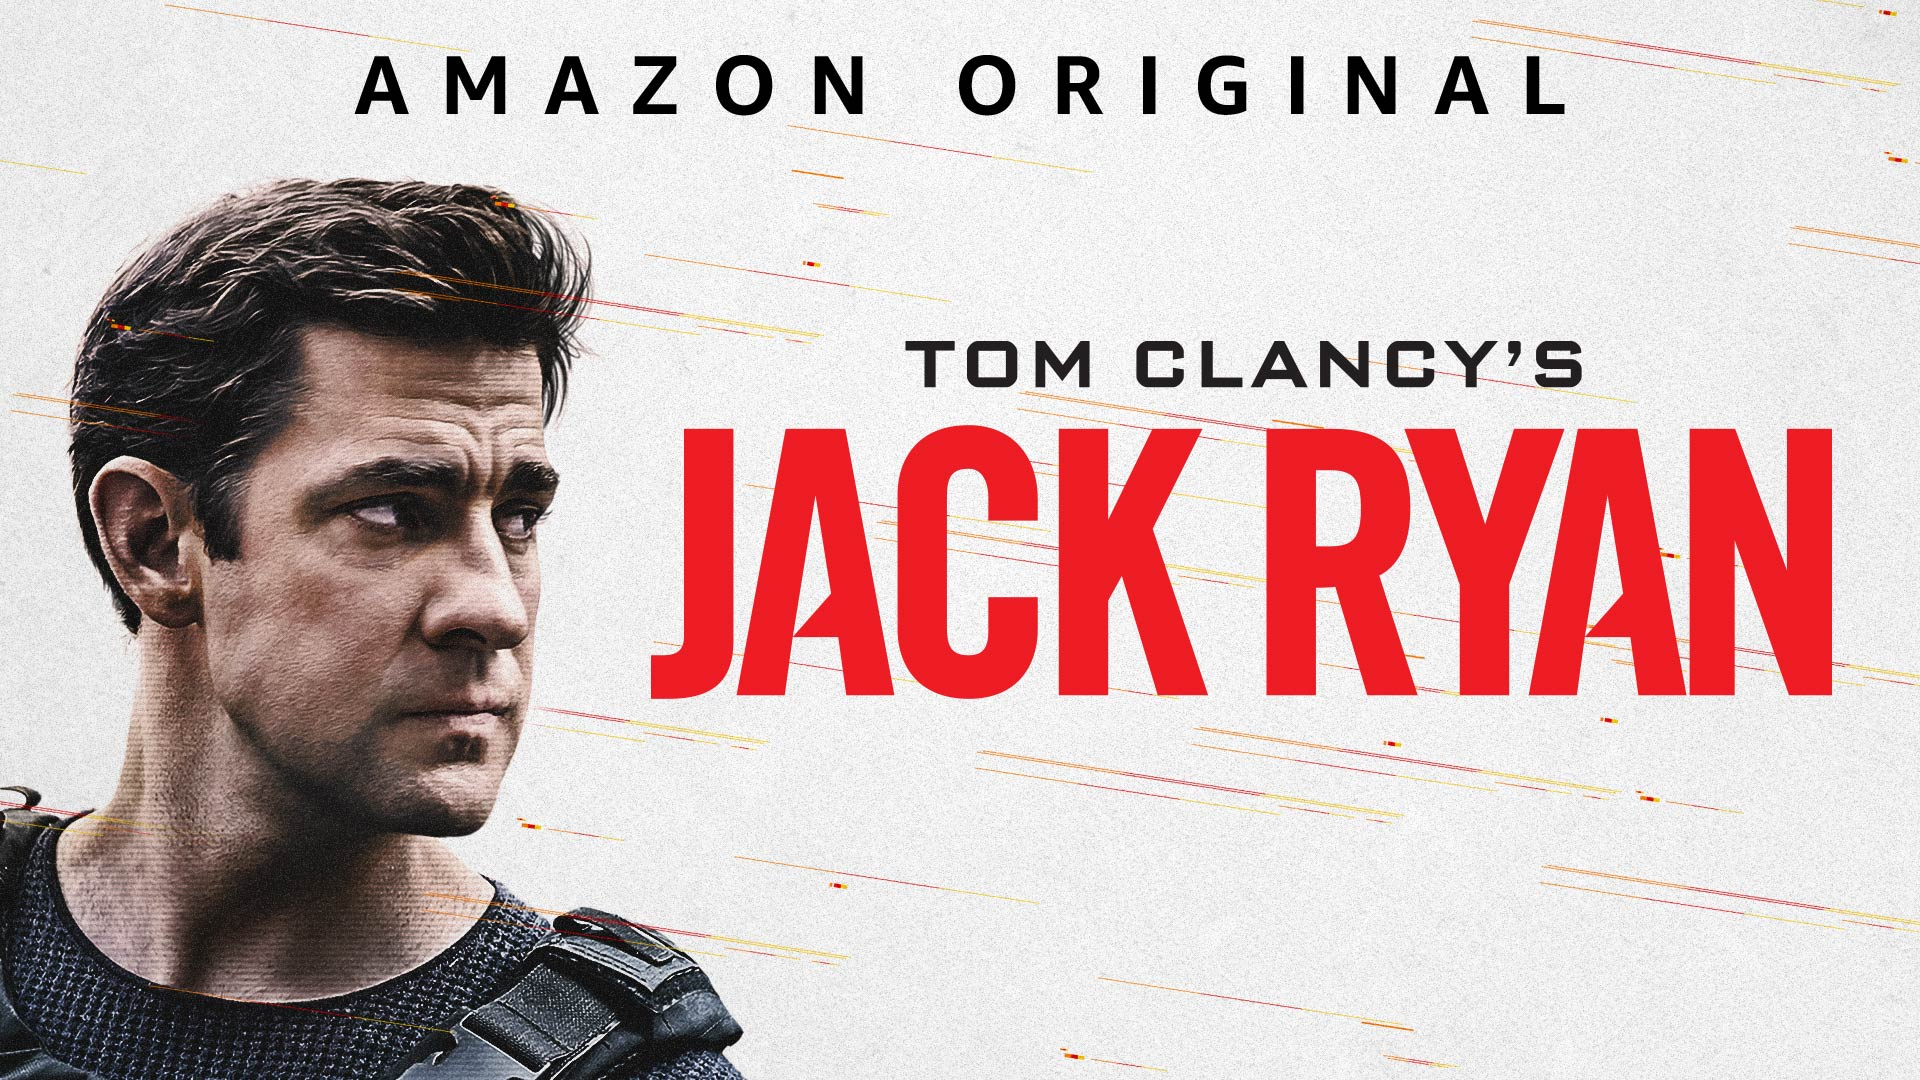 Jack Ryan de Tom Clancy - temporada 1